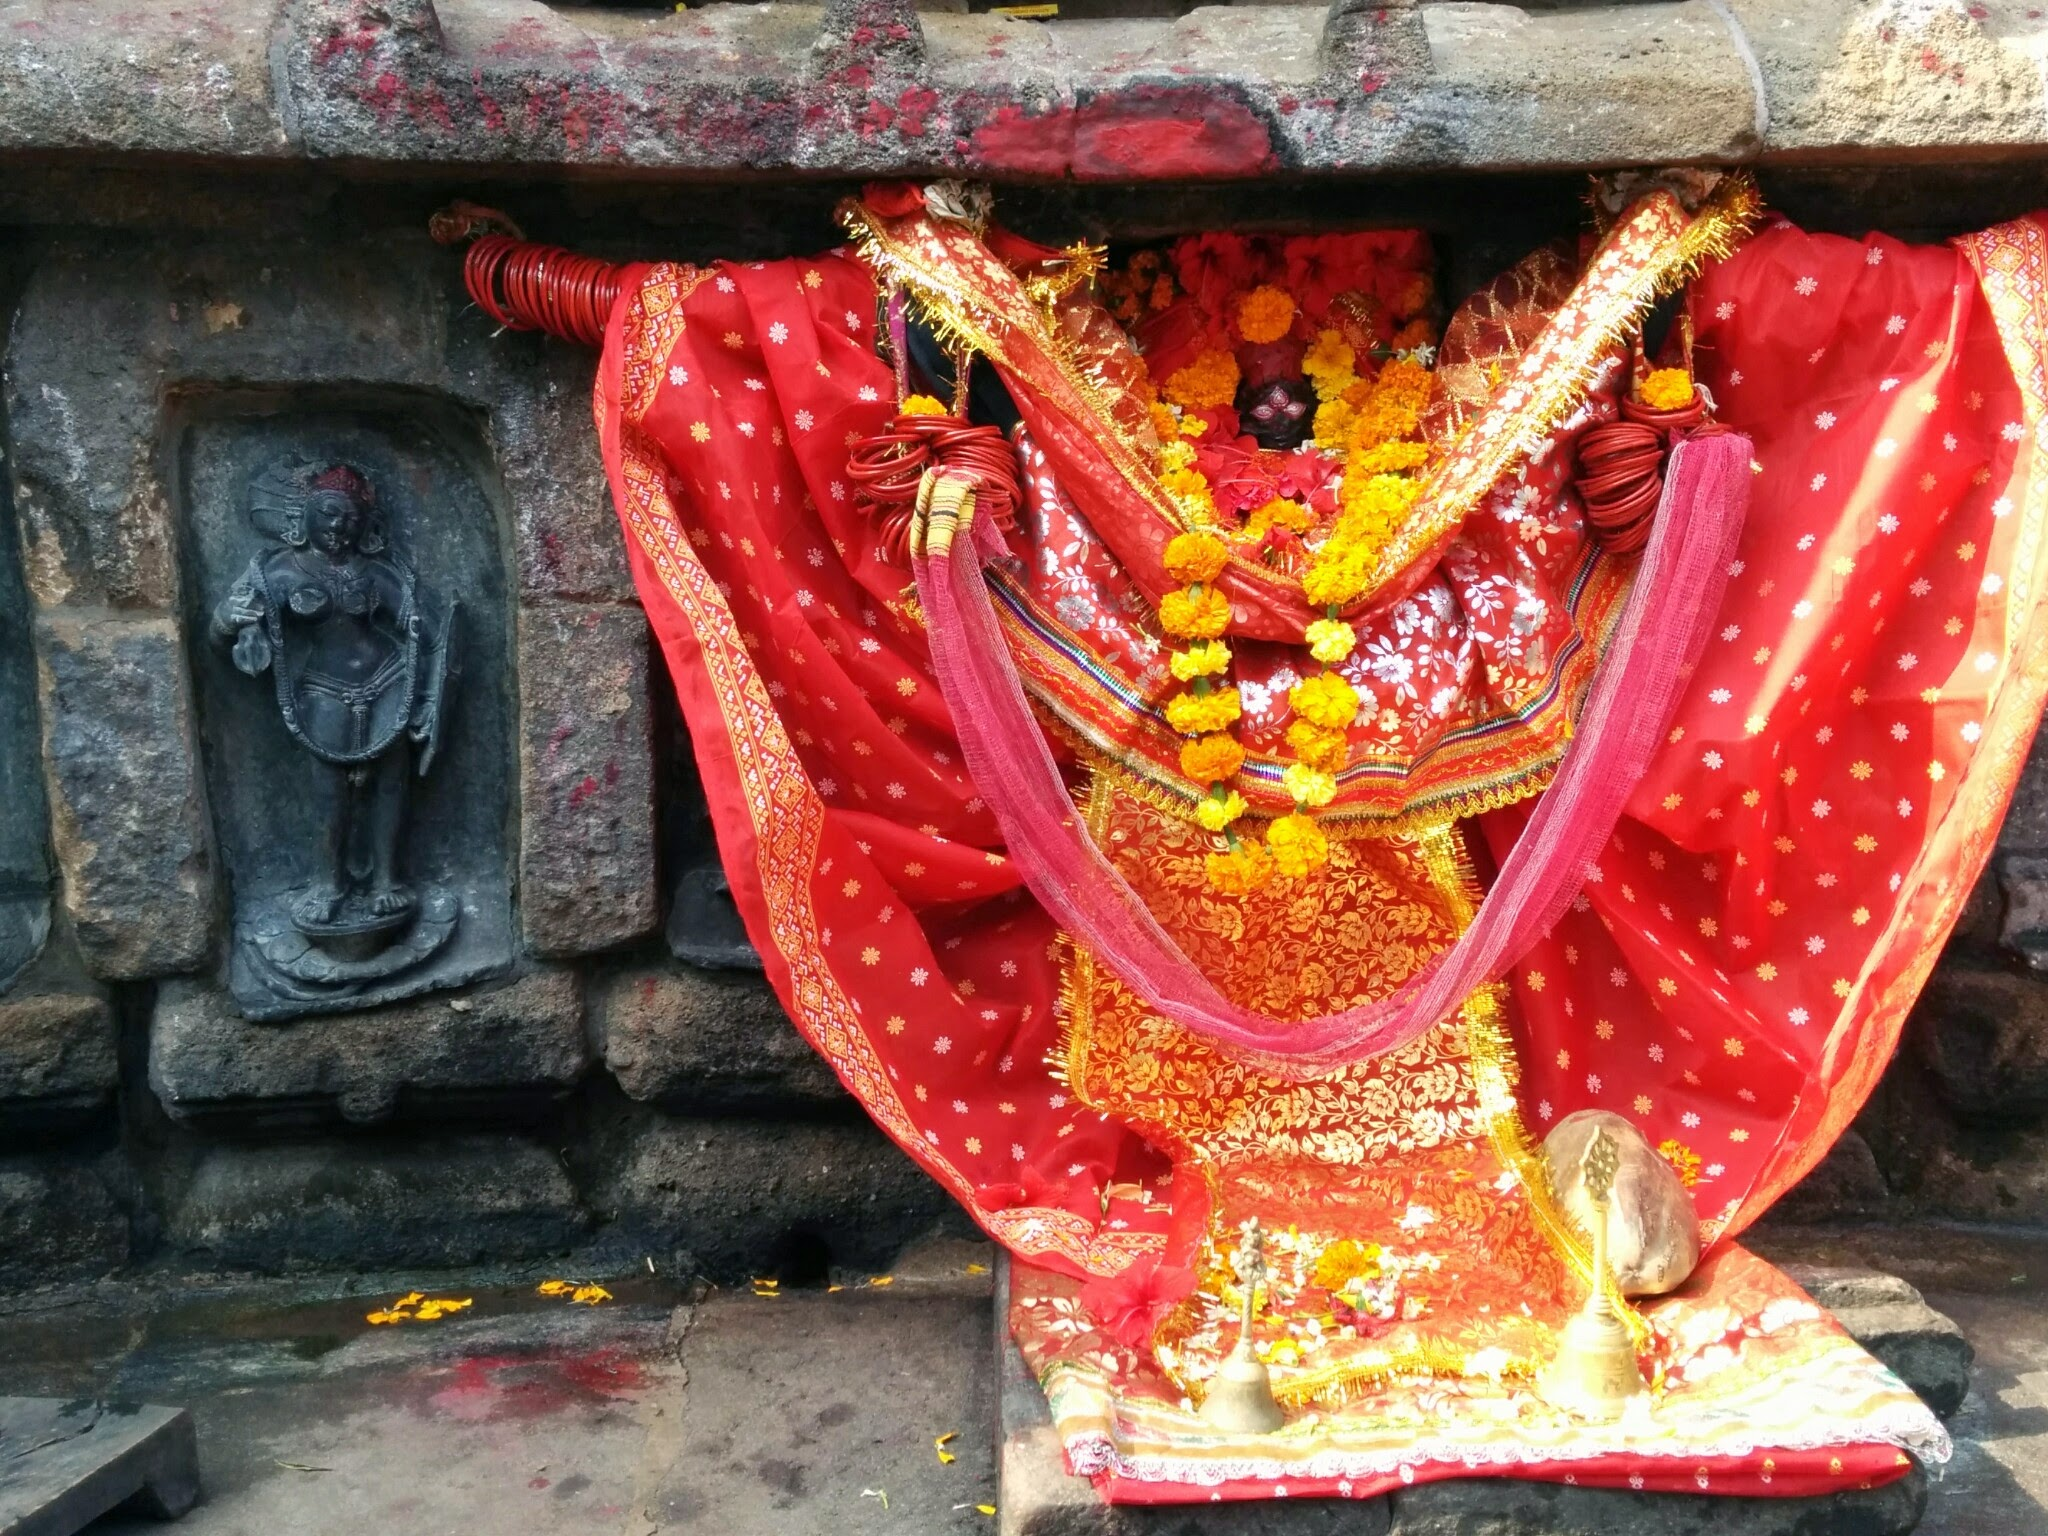 One yogini worshipped as Mahamaya